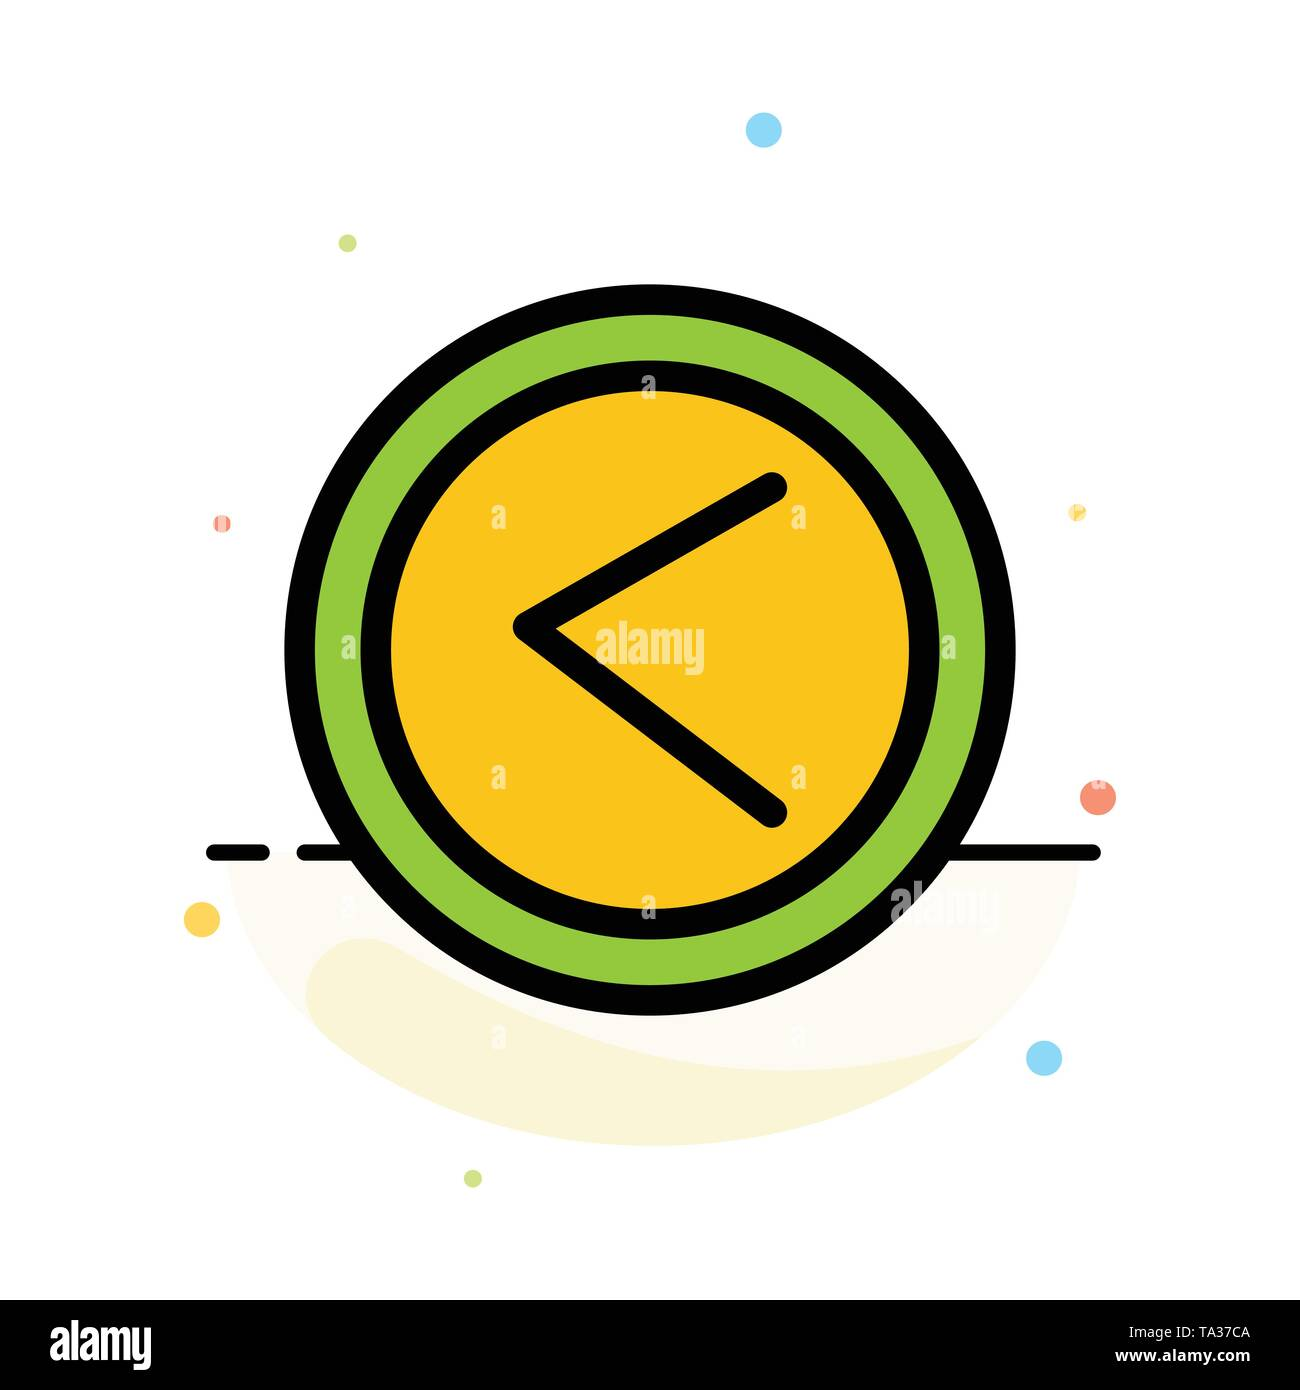 Arrow, Interface, Left, User Abstract Flat Color Icon Template - Stock Image